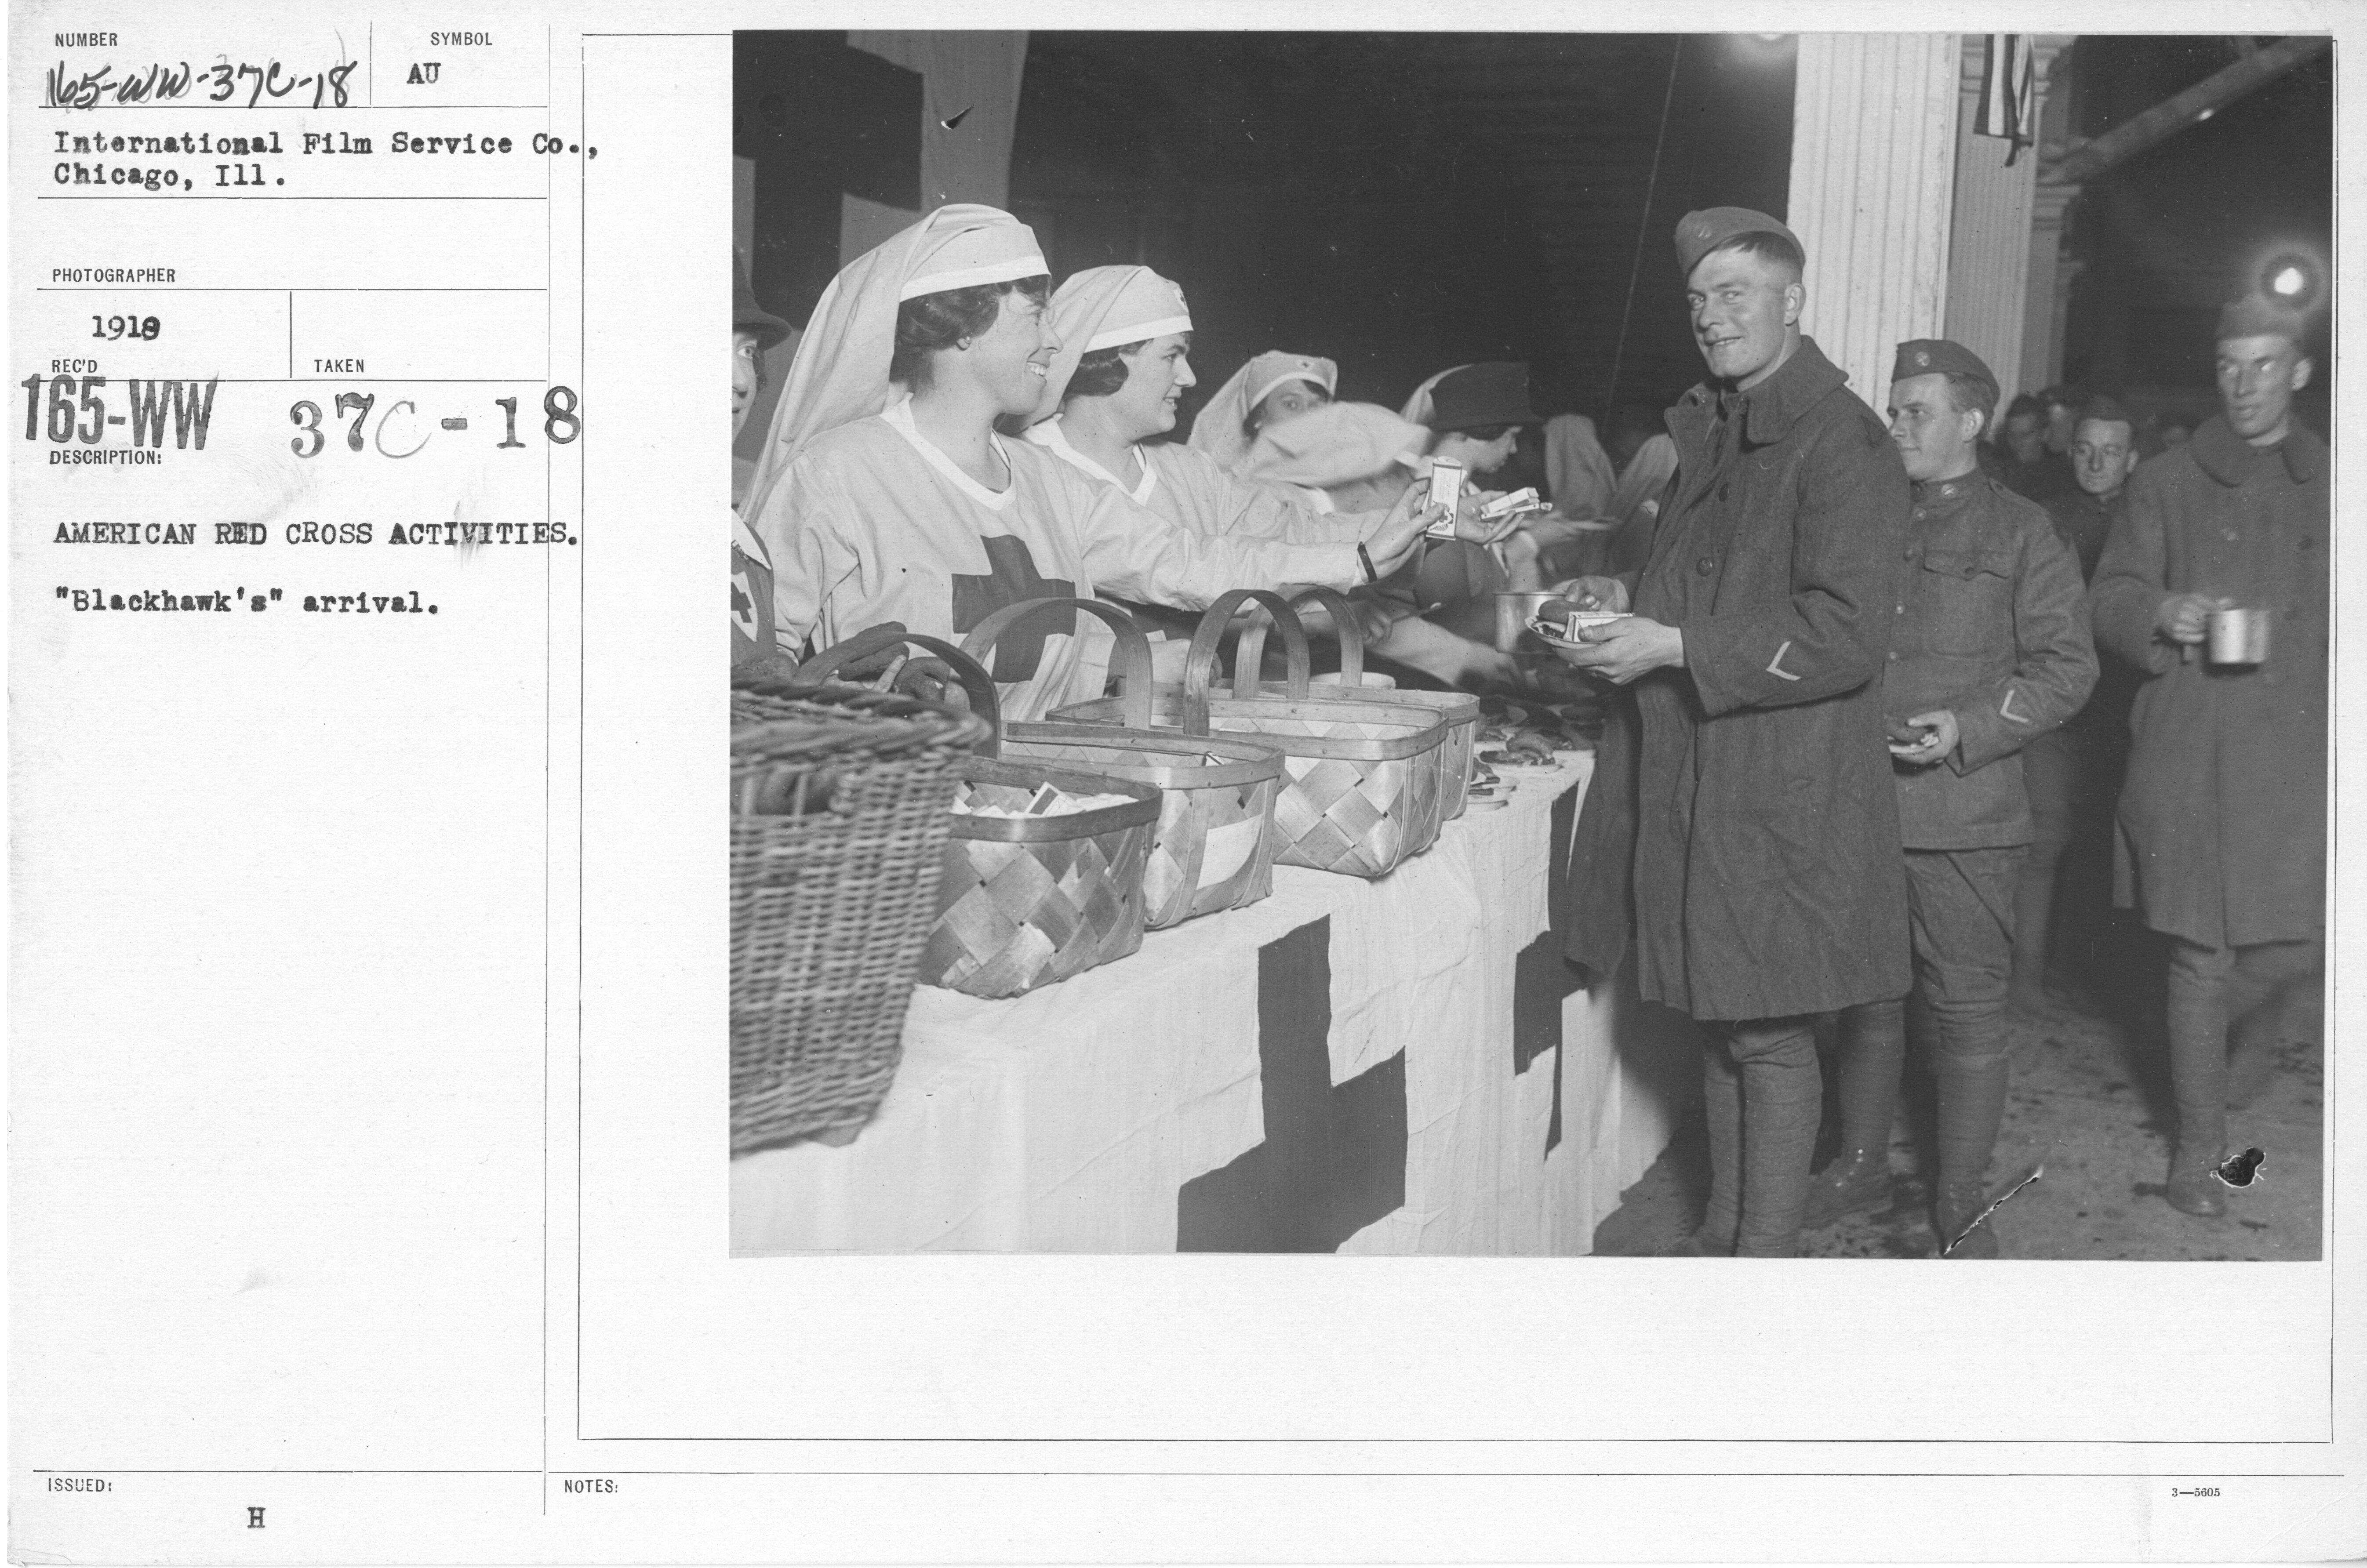 American Red Cross - Refreshments - American Red Cross Activities.